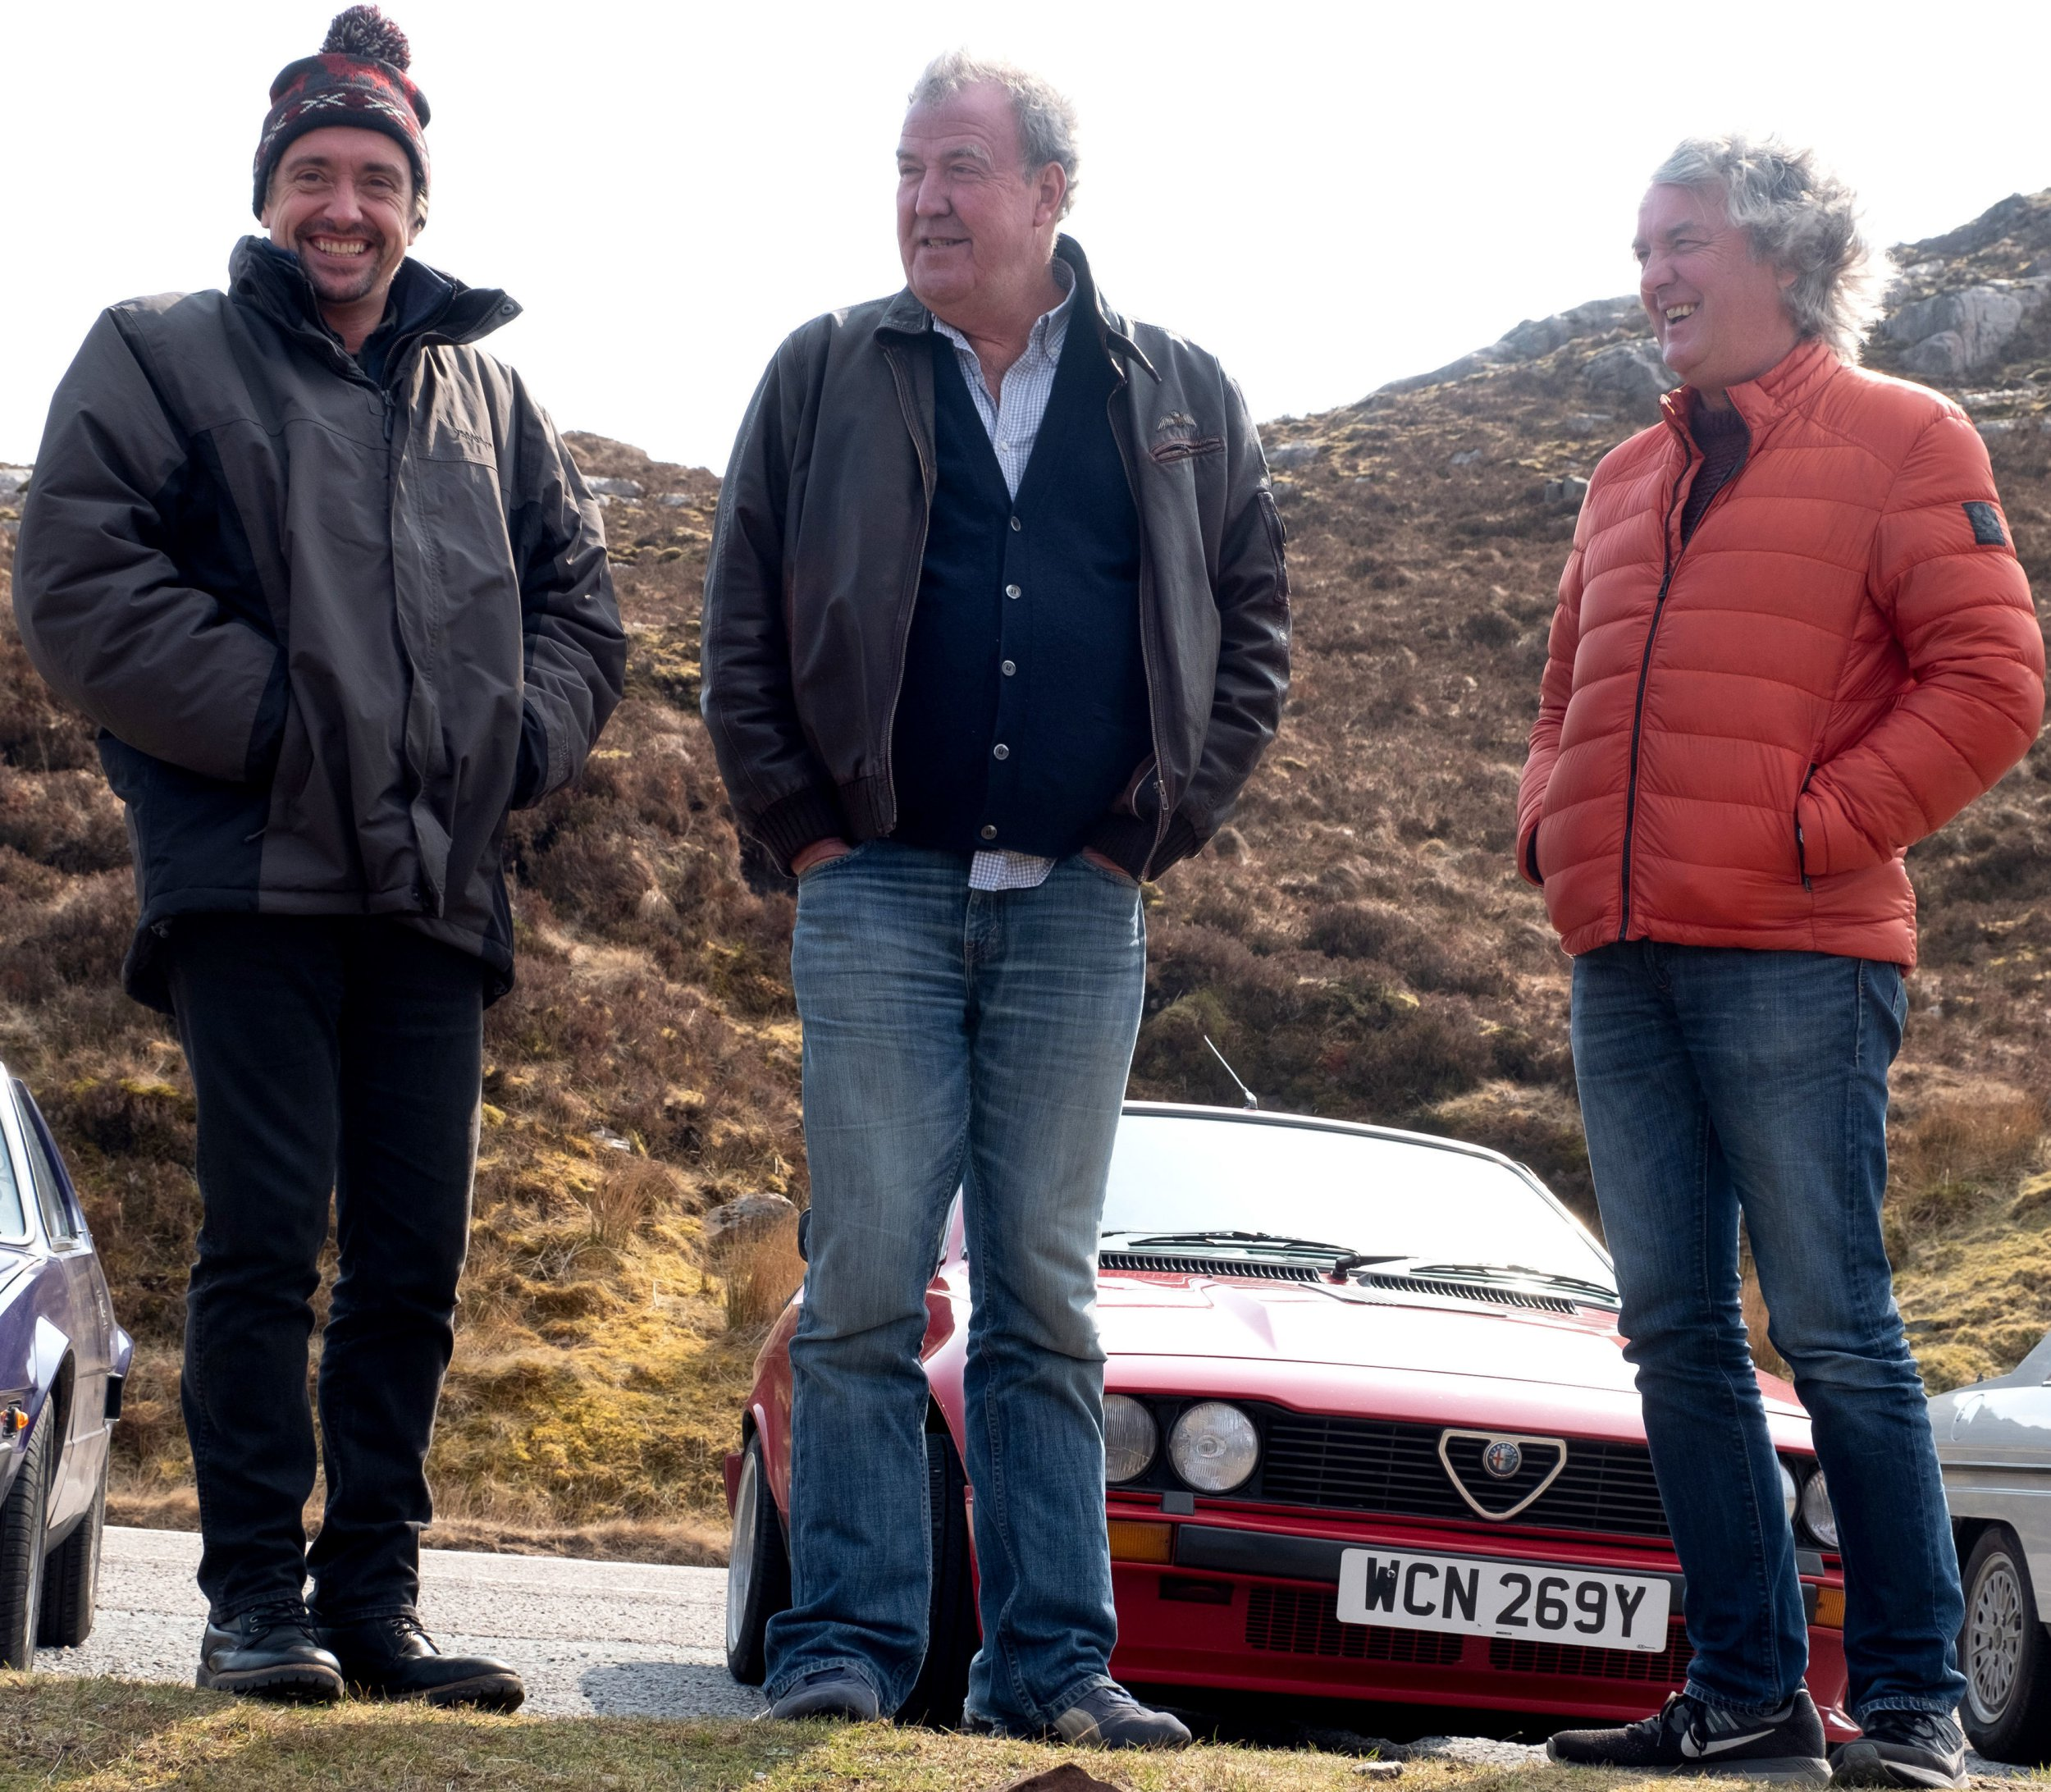 Undated handout photo issued by Amazon Prime of (left to right) Richard Hammond, Jeremy Clarkson and James May in Scotland, during filming the third series of The Grand Tour, which returns in January 2019. PRESS ASSOCIATION Photo. Issue date: Tuesday November 27, 2018. See PA story SHOWBIZ Tour. Photo credit should read: Ellis O'Brien/PA Wire NOTE TO EDITORS: This handout photo may only be used in for editorial reporting purposes for the contemporaneous illustration of events, things or the people in the image or facts mentioned in the caption. Reuse of the picture may require further permission from the copyright holder.